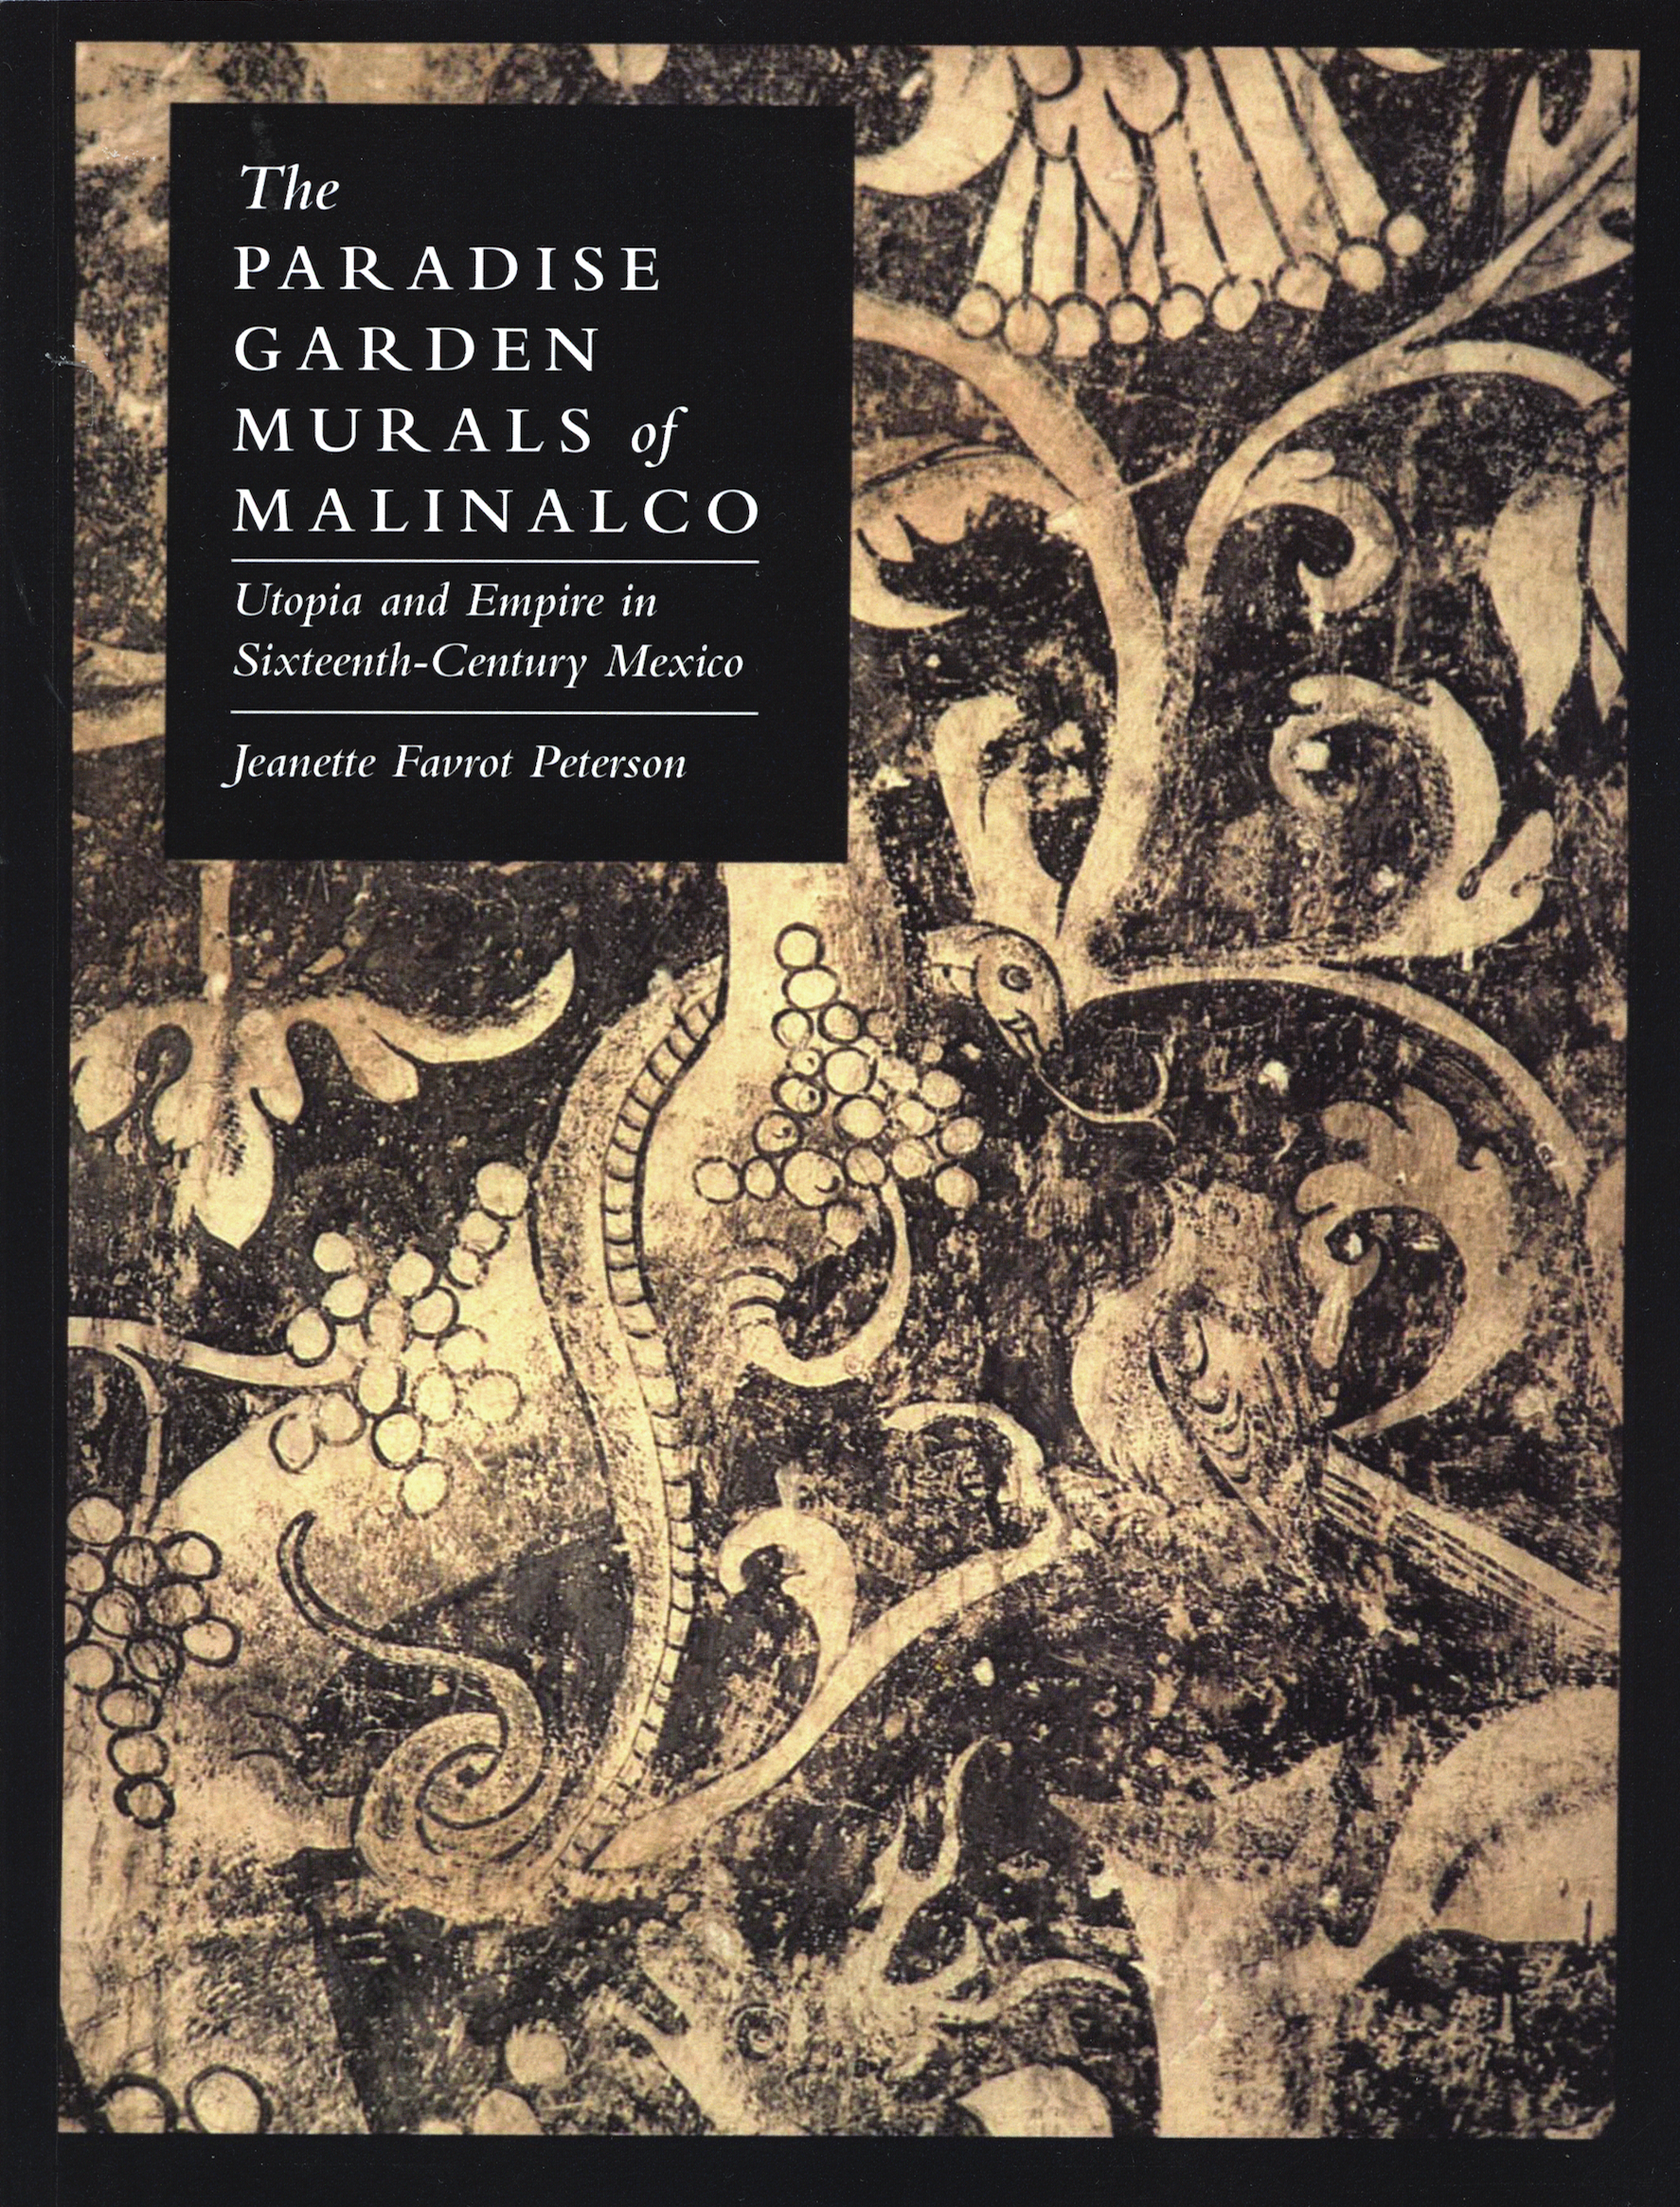 Jeanette Favrot Peterson, The Paradise Garden Murals of Malinalco: Utopia and Empire in Sixteenth-Century Mexico (Austin: University of Texas Press, 1993)